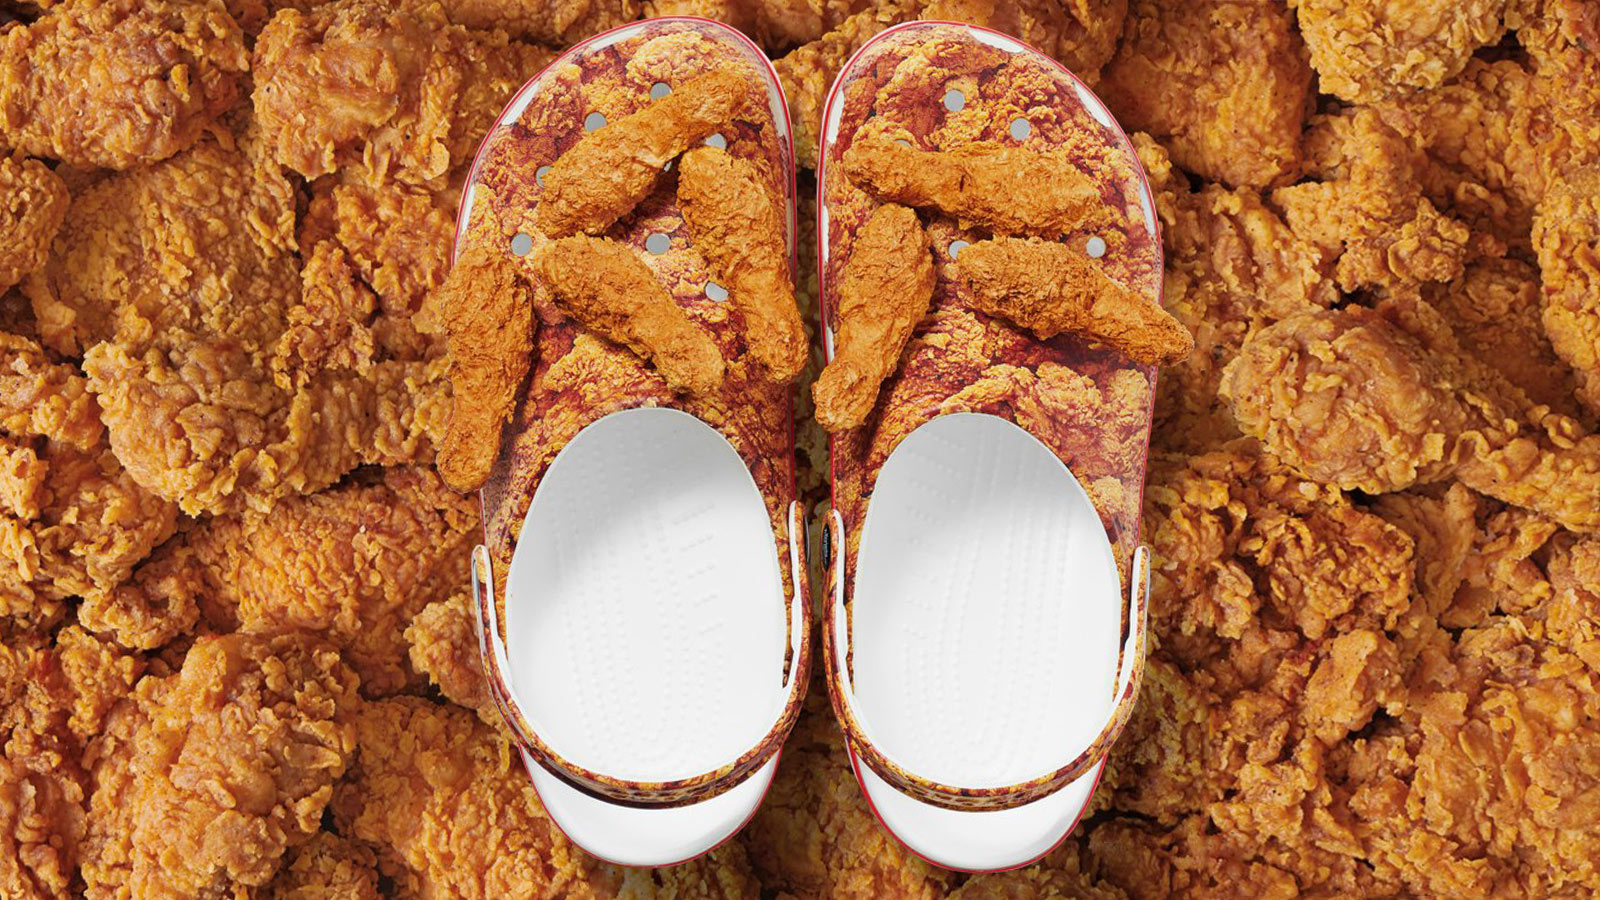 KFC x Crocs Clogs Limited Edition